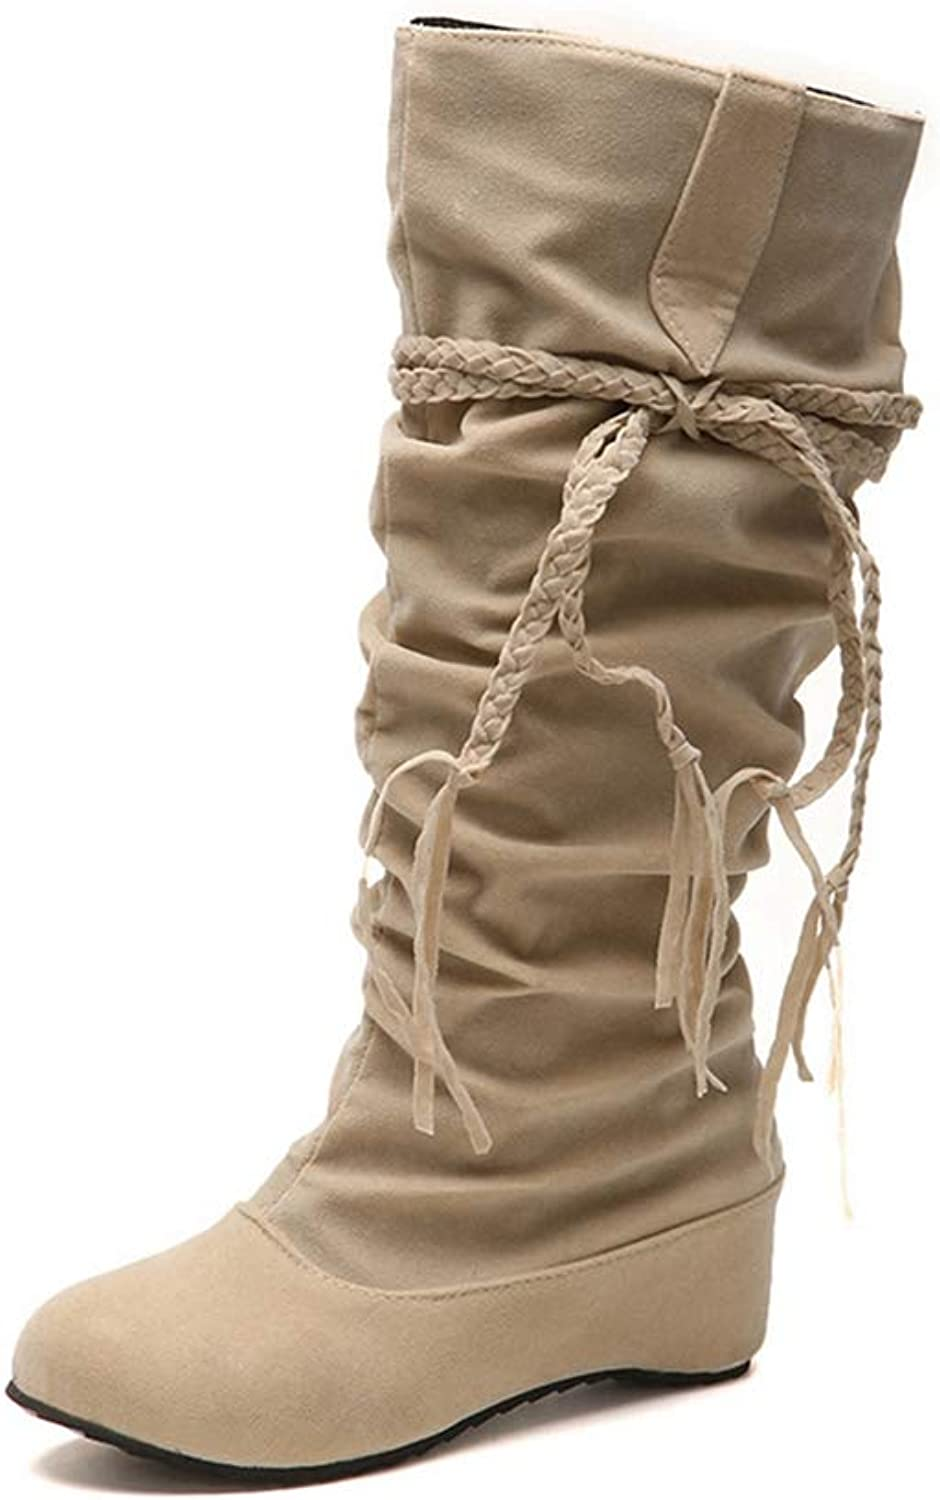 NOMIMAS Women's Mid-Calf Boots Weaving Tassels Increasing Height shoes Casual Low Heels Botas Fashion